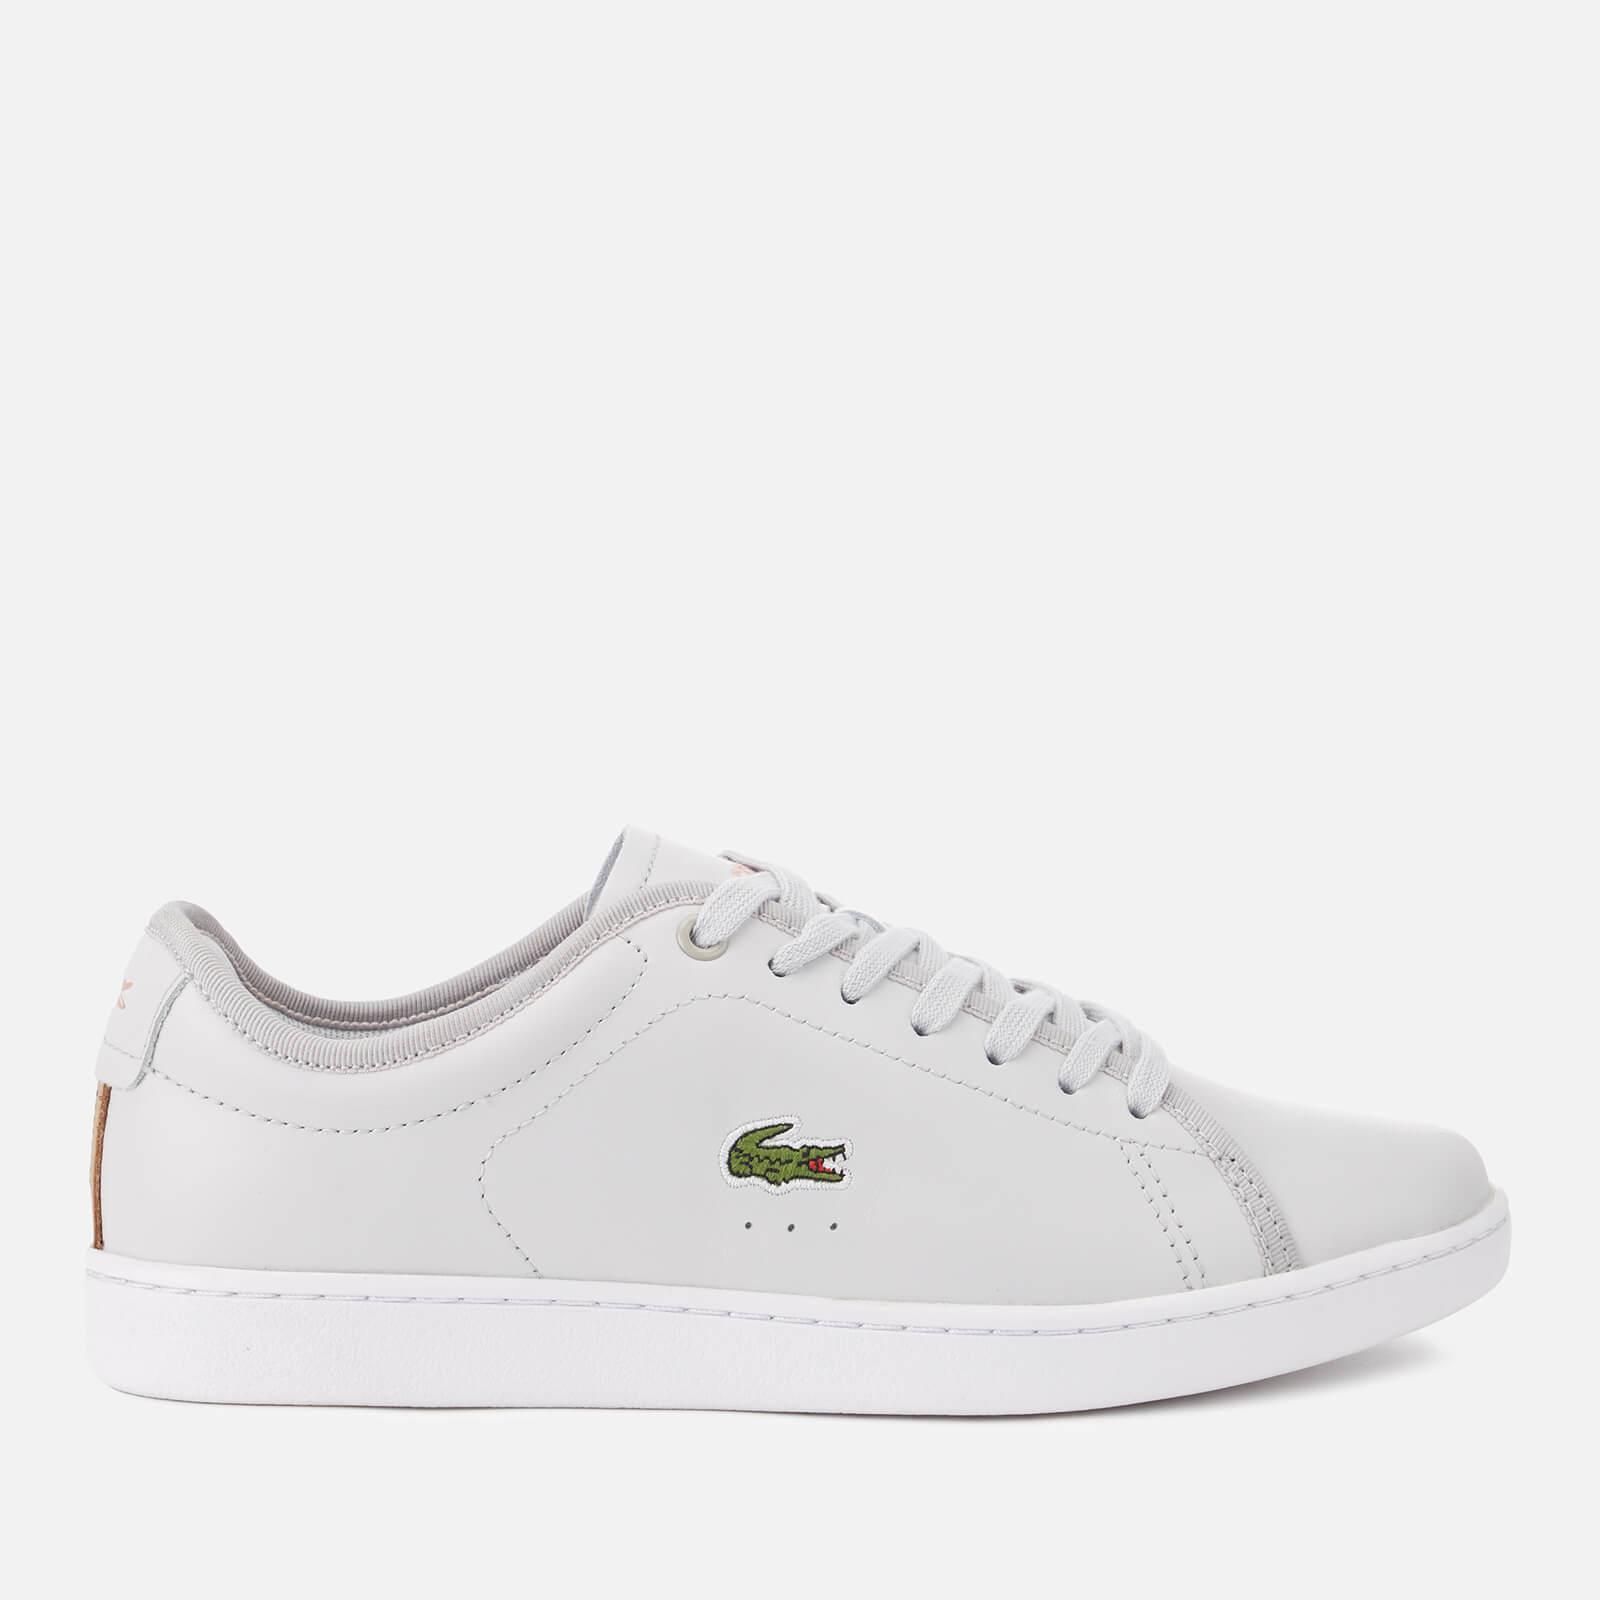 ee01afa5f3f054 Lyst - Lacoste Carnaby Evo 318 6 Leather Trainers in Gray